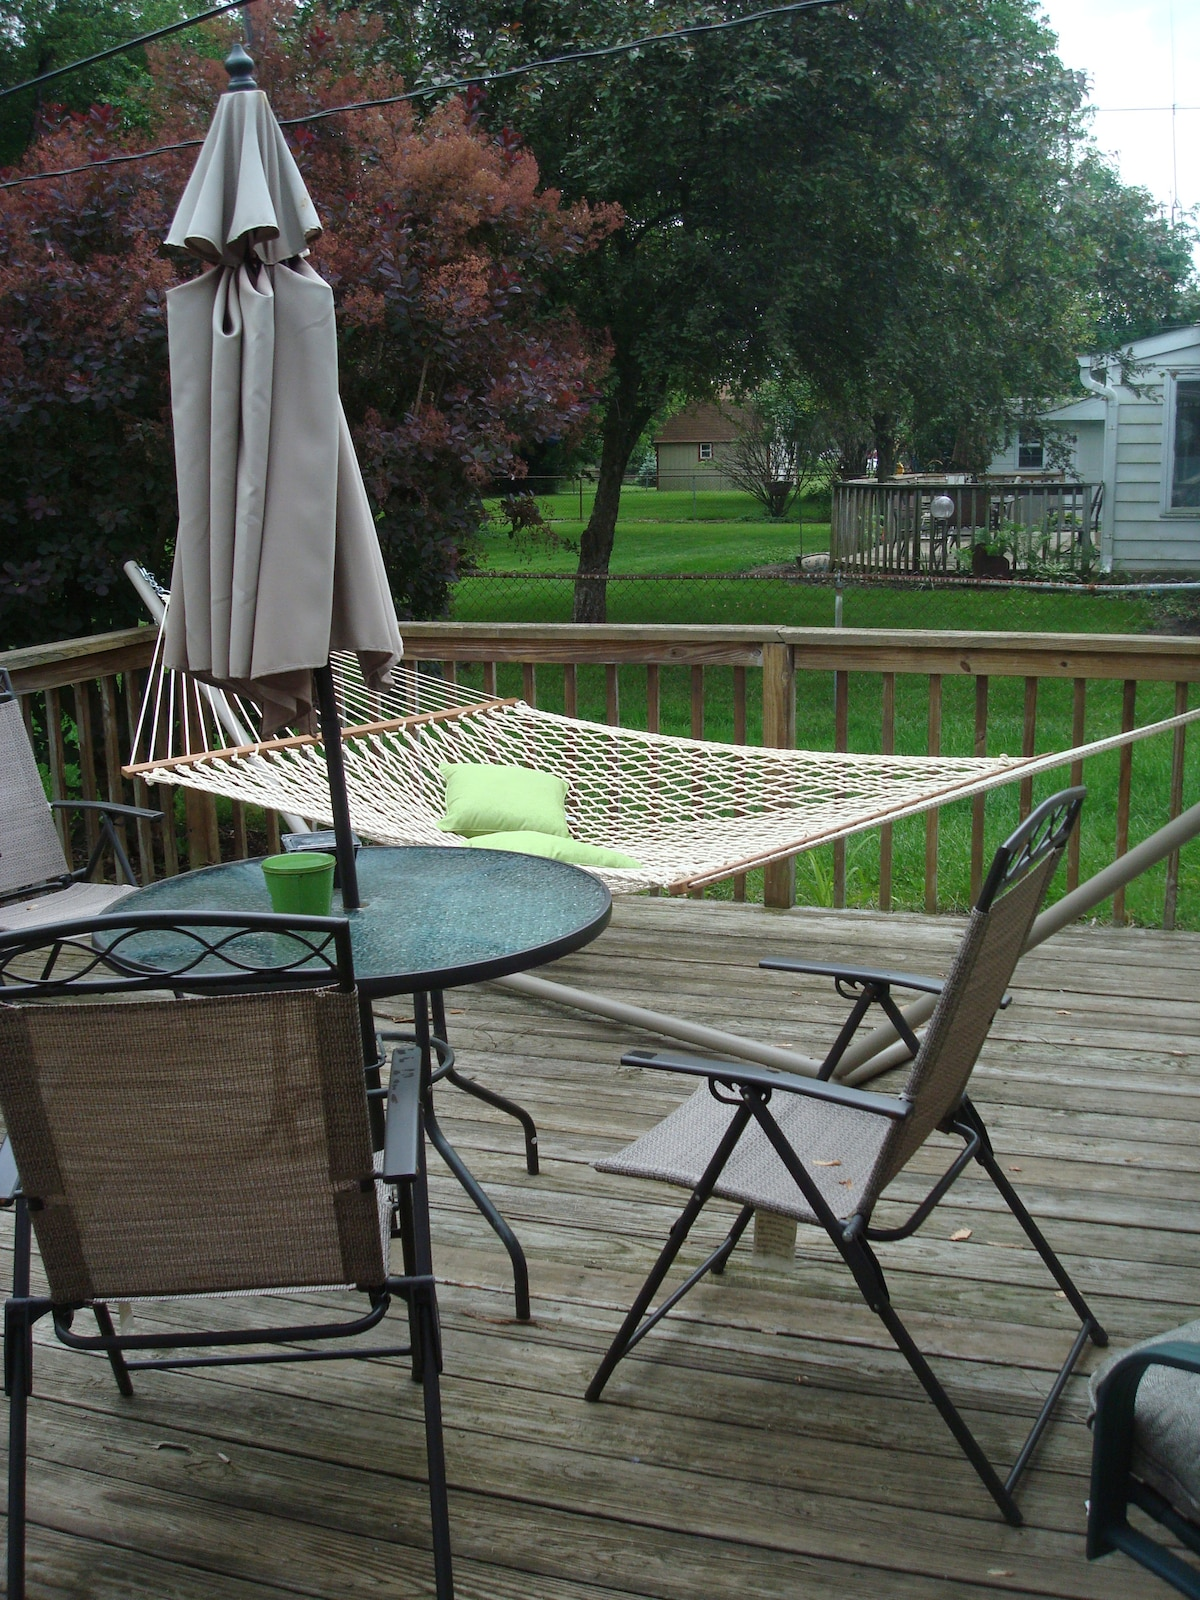 Our deck is perfect for warm sunny days and the hammock is a perfect place to relax.